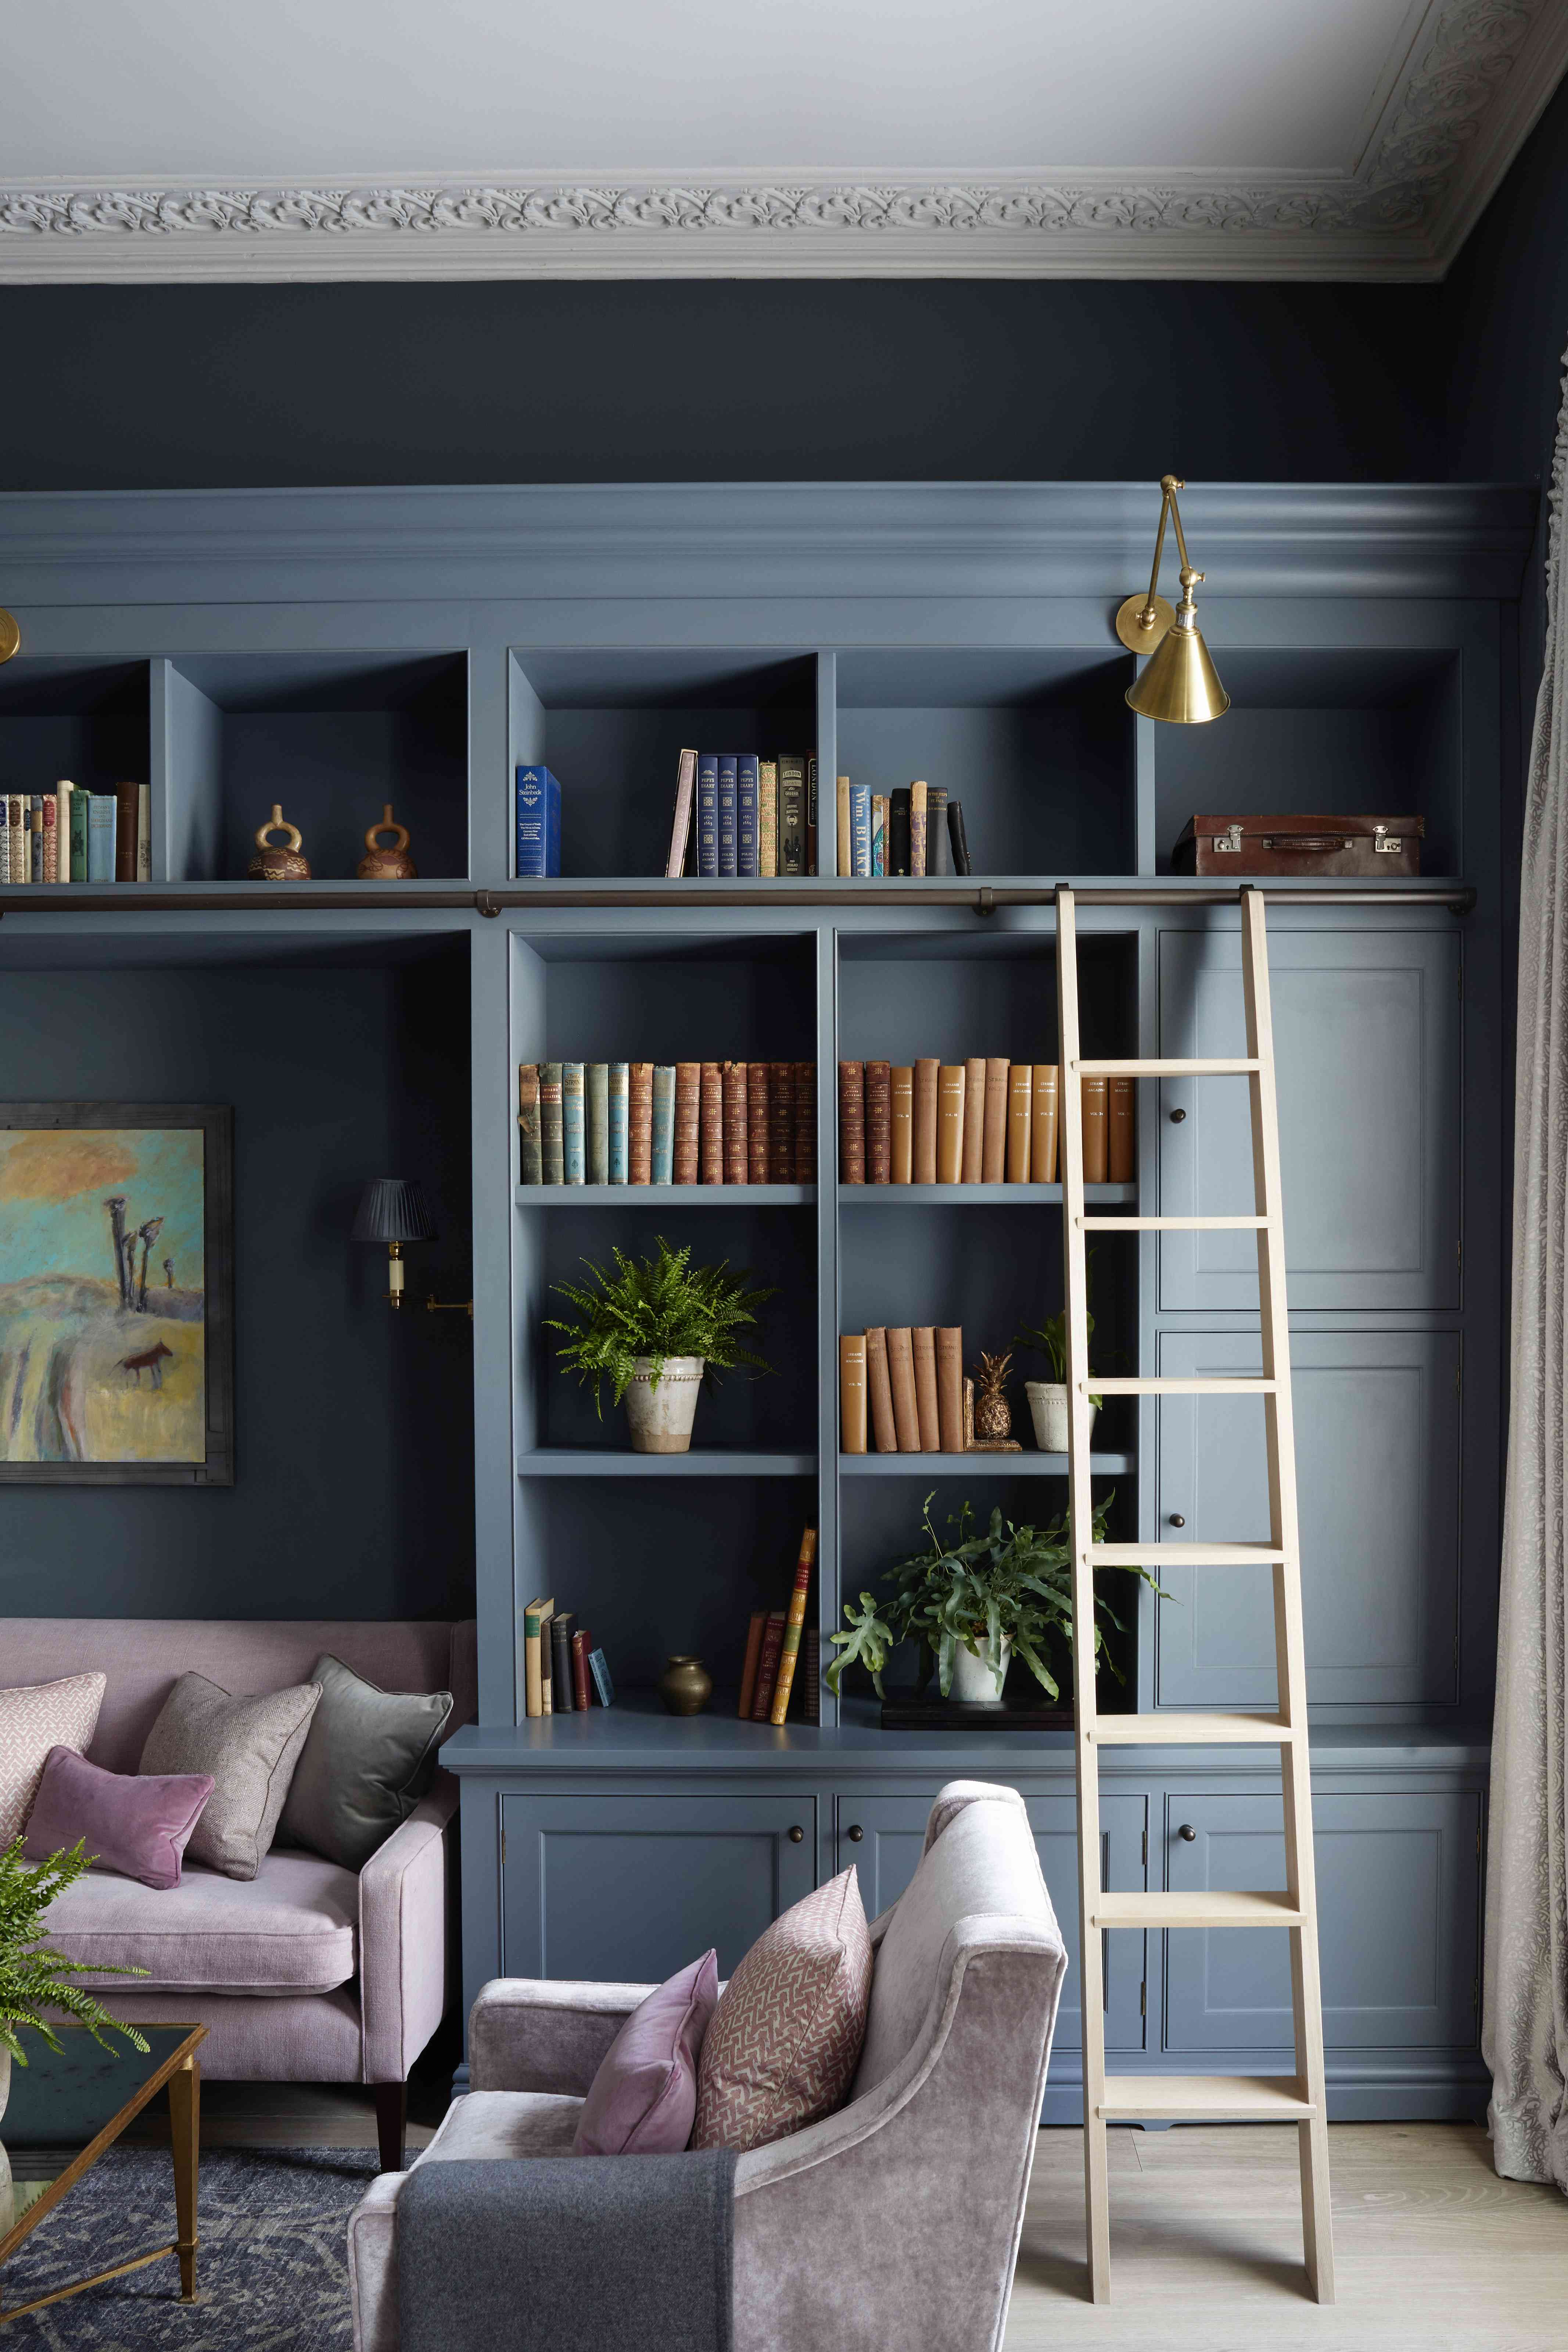 colorful book spines adorn the shelves of this built-in unit